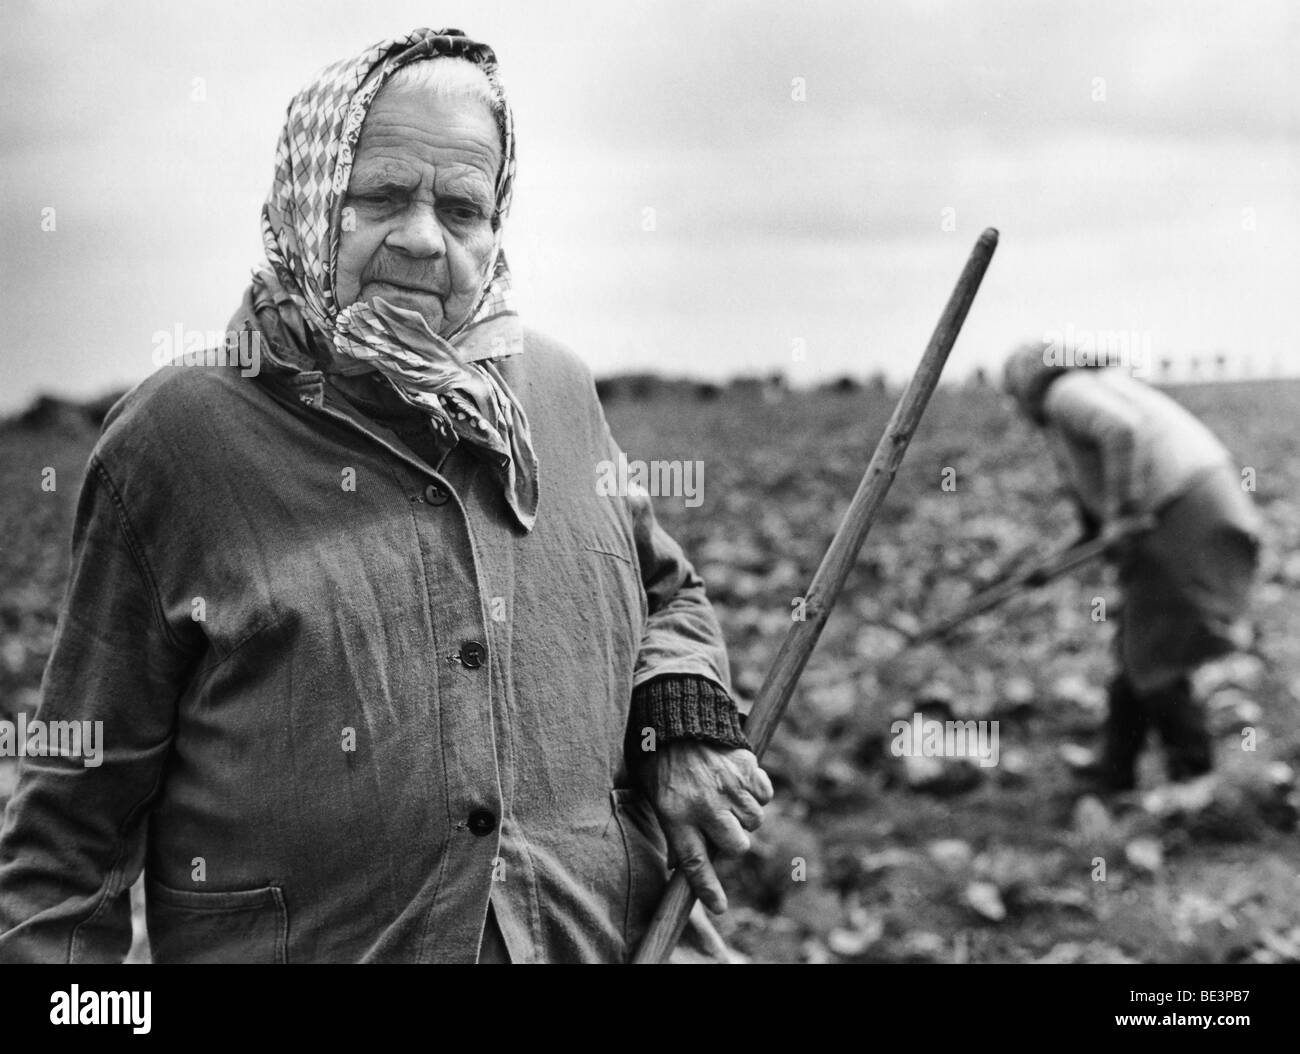 Farmwoman of an LPG, acronym for collectivised farms in the former East Germany, field work, in Borna, GDR, historical - Stock Image